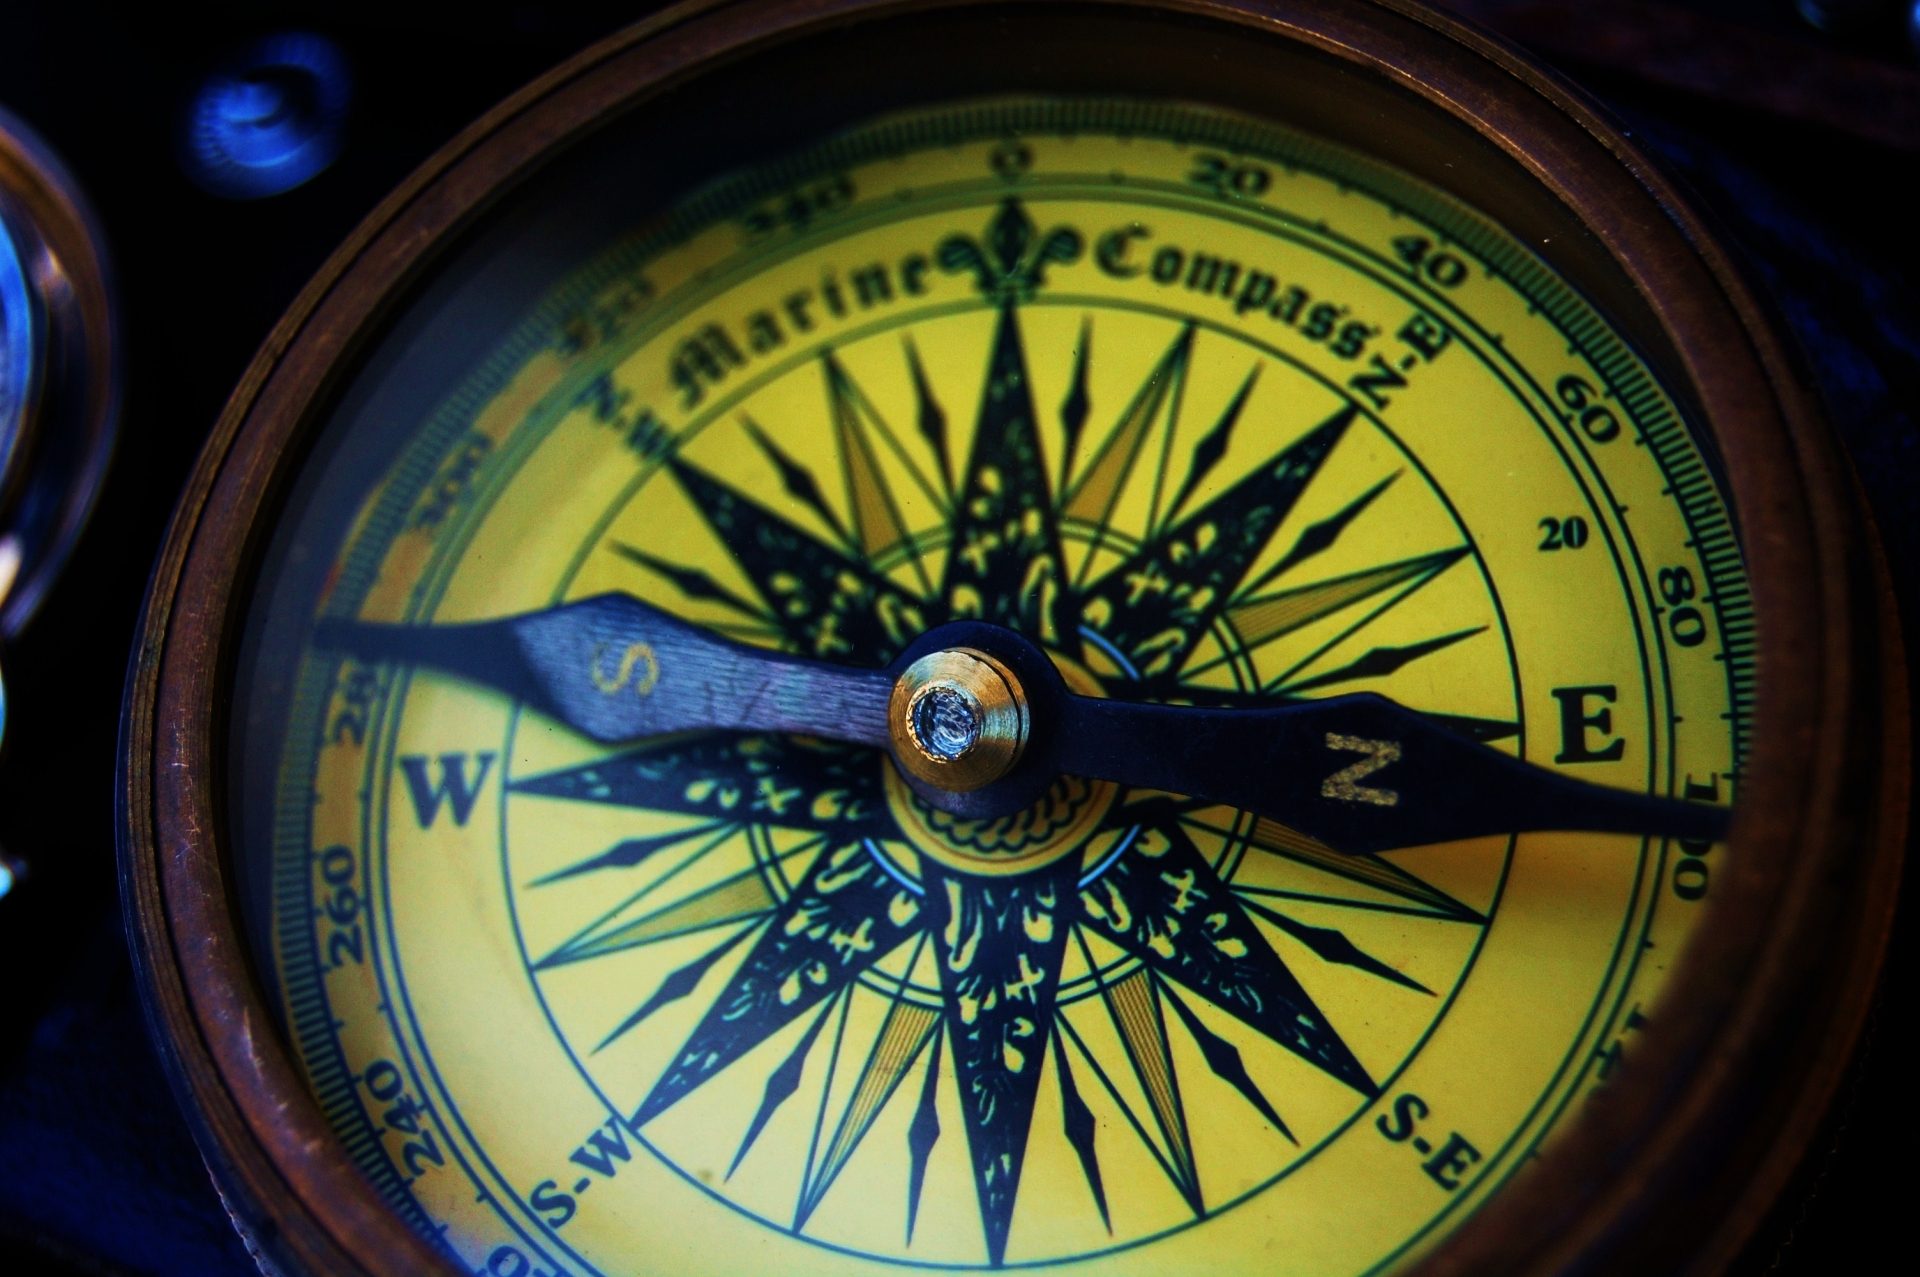 Compass hd wallpaper background image 1920x1277 id 249168 wallpaper abyss - Compass hd wallpaper ...